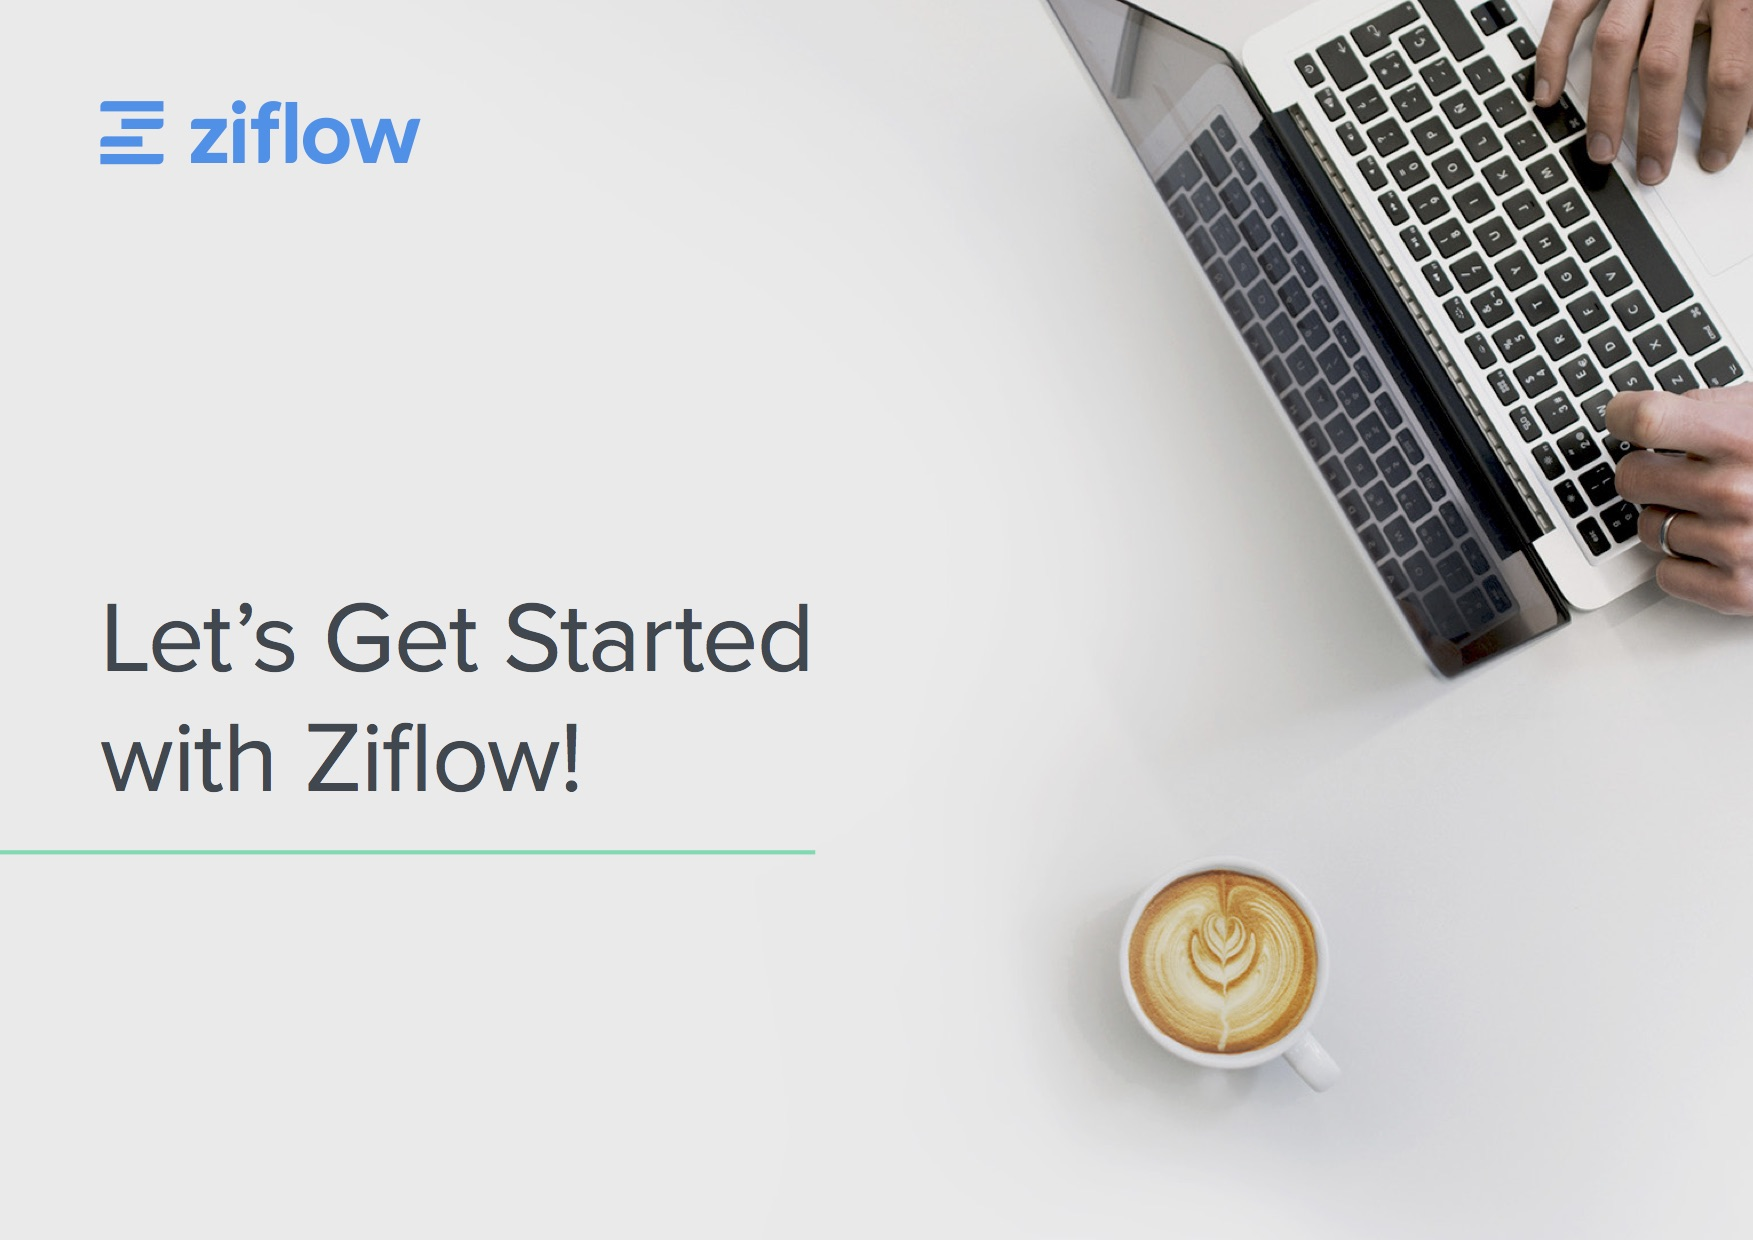 Getting Started with Ziflow